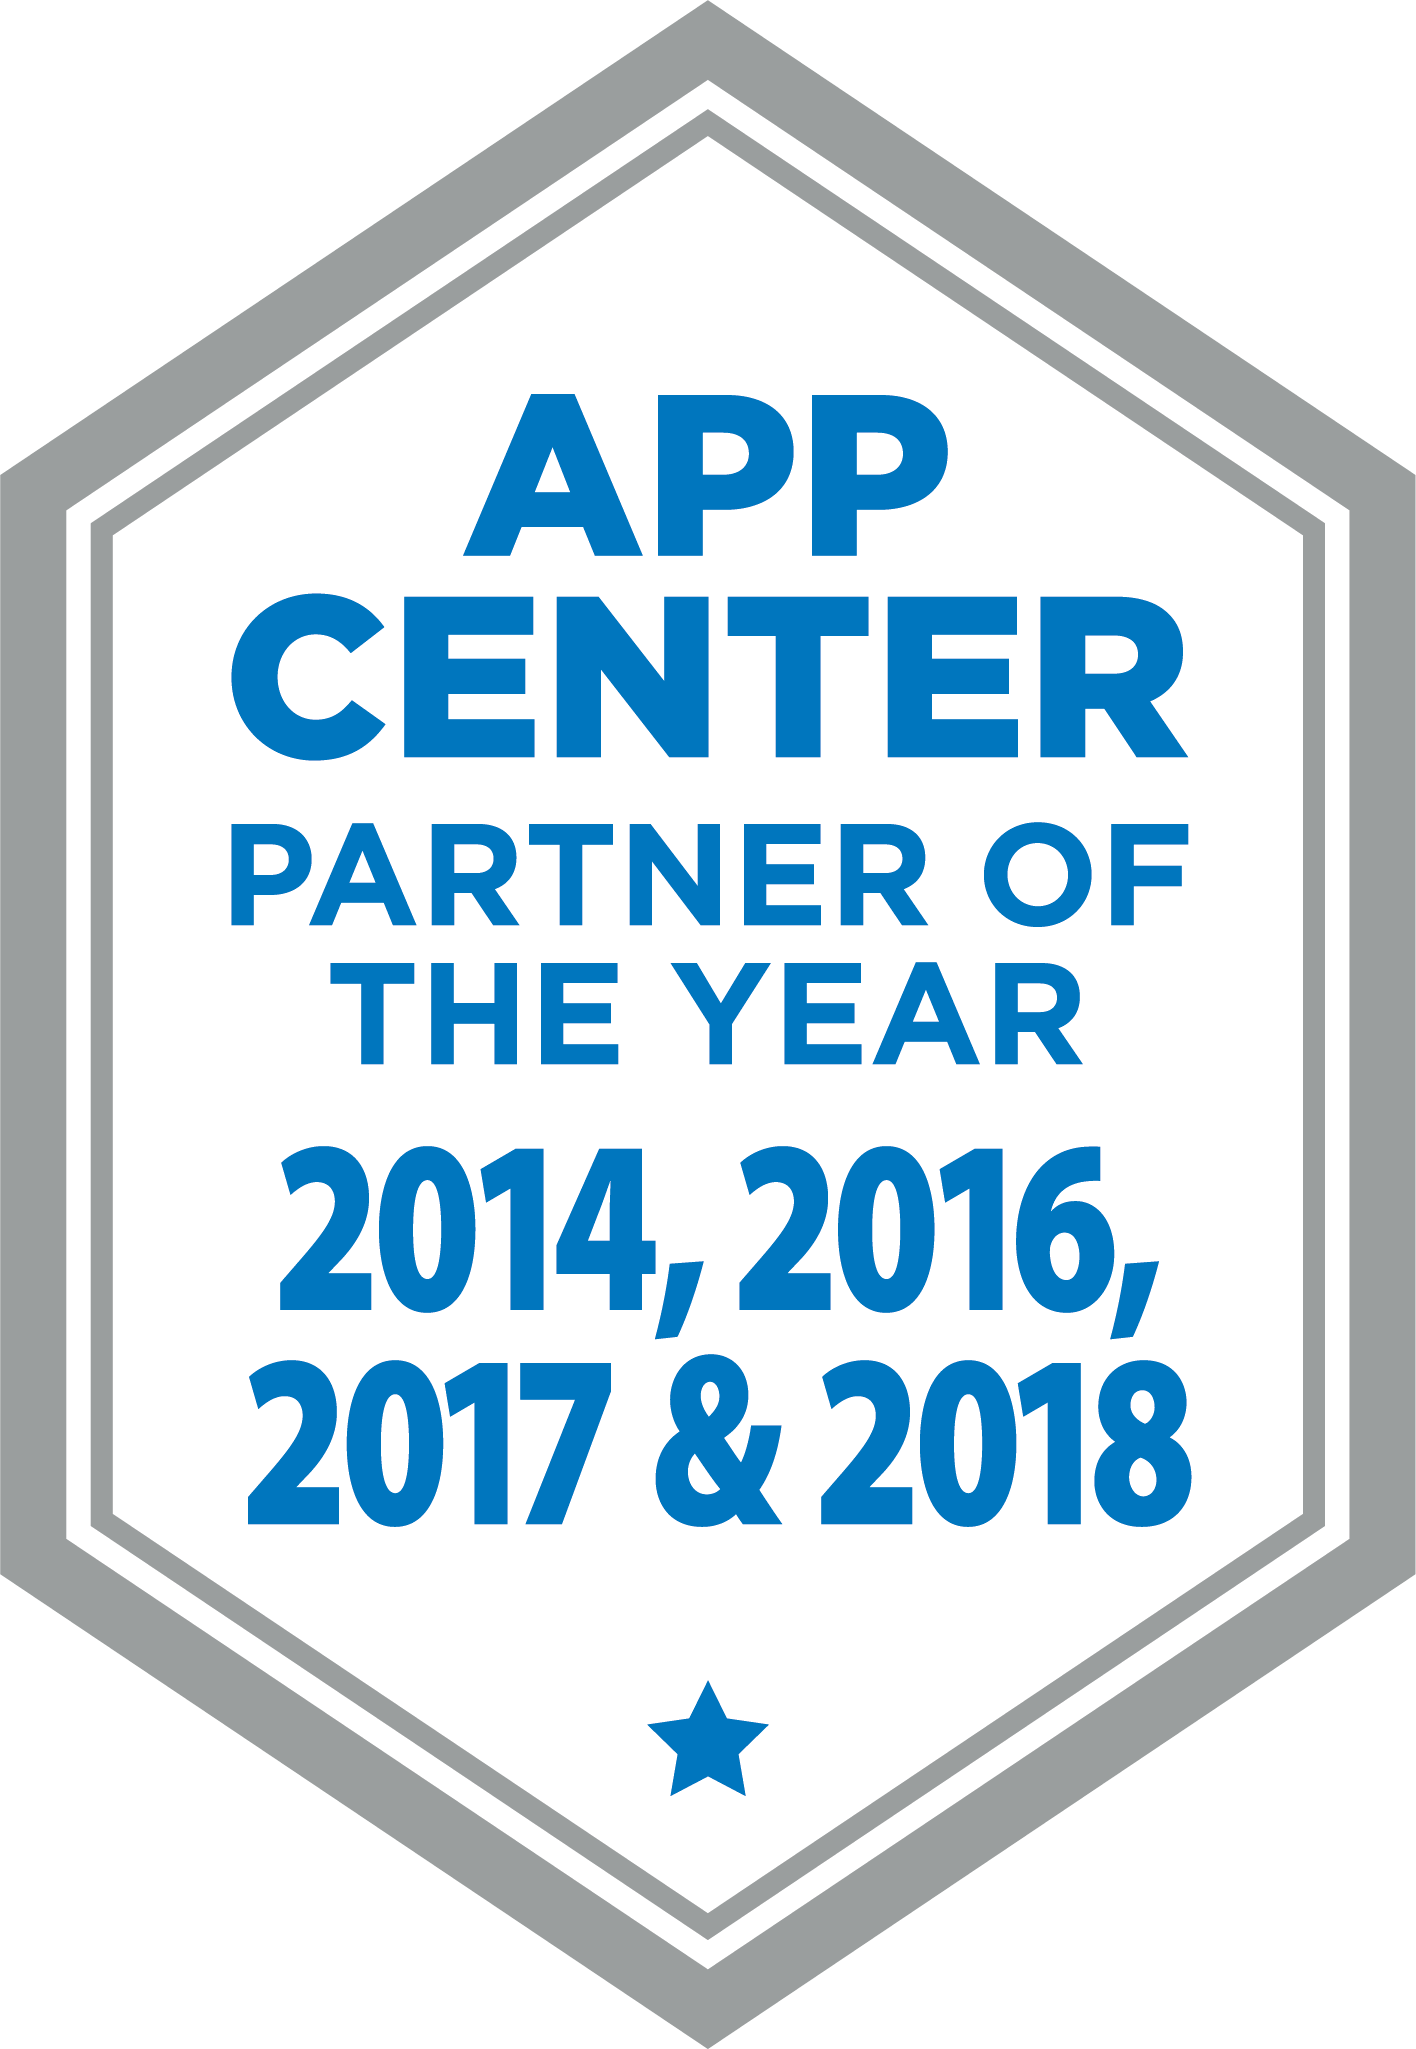 Concur Partner of the Year 2014, 2016, 2017, and 2018